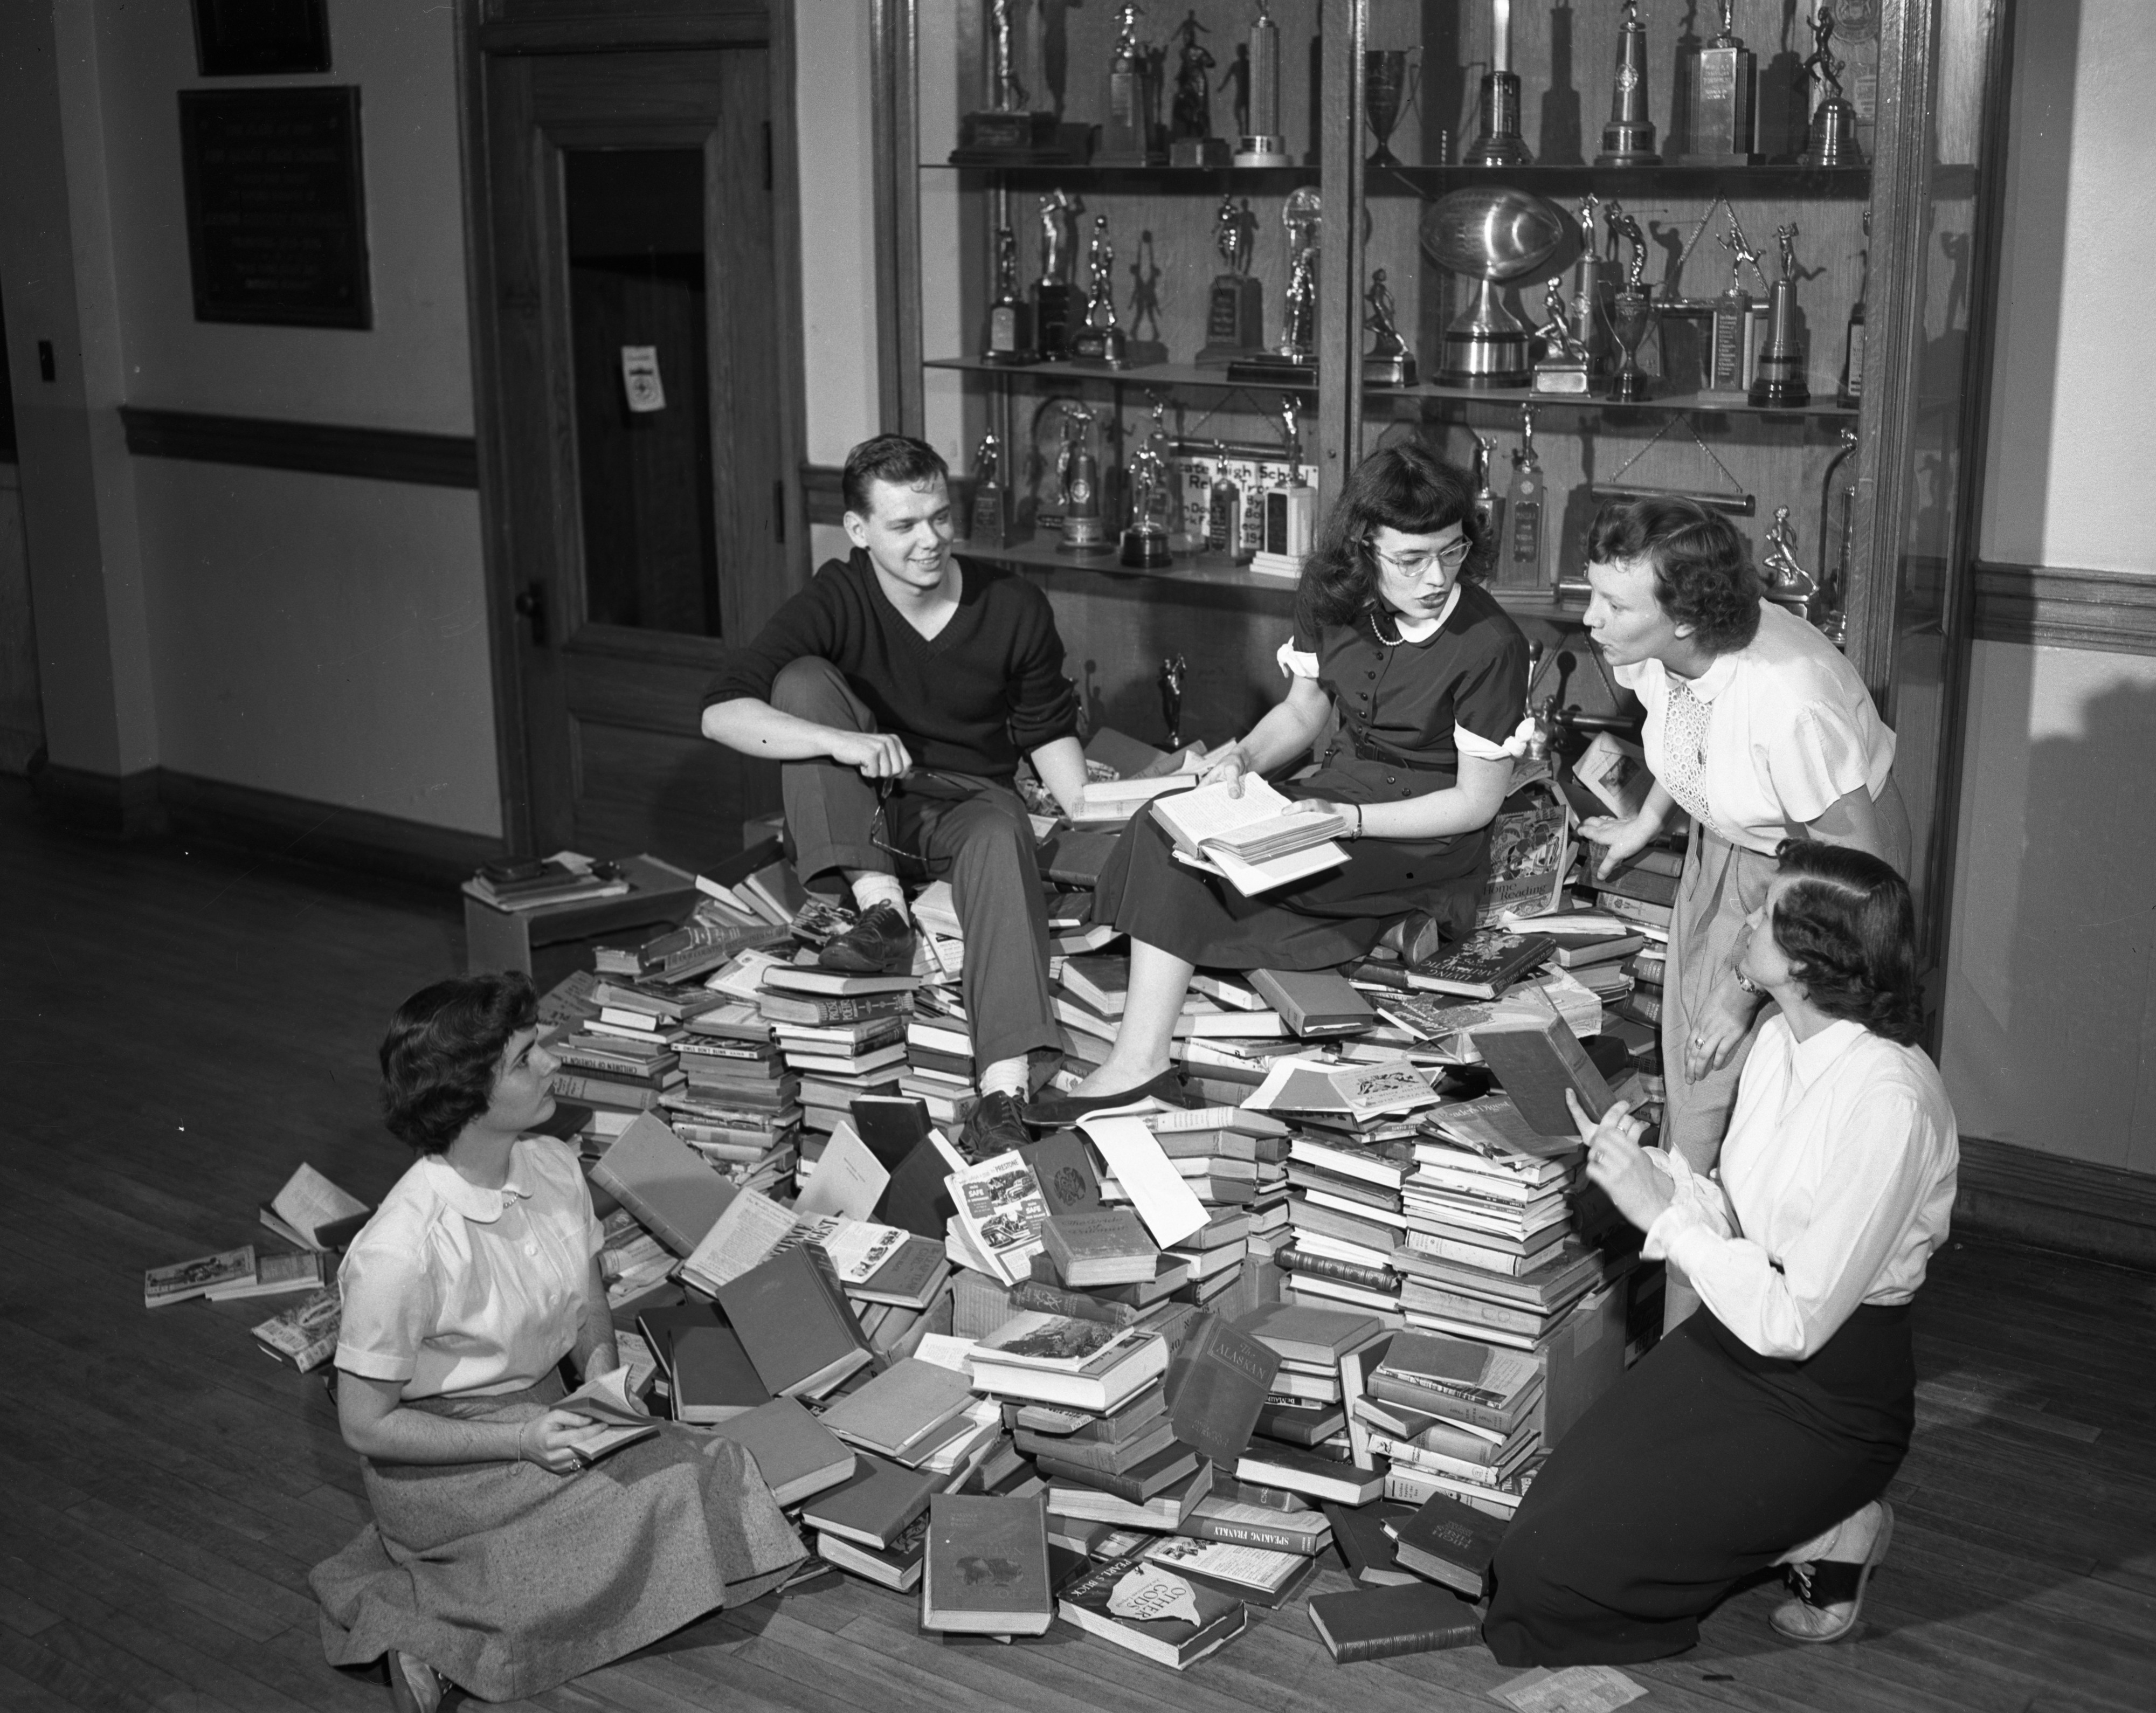 Ann Arbor High School students collect books to donate to prison, April 1950 image